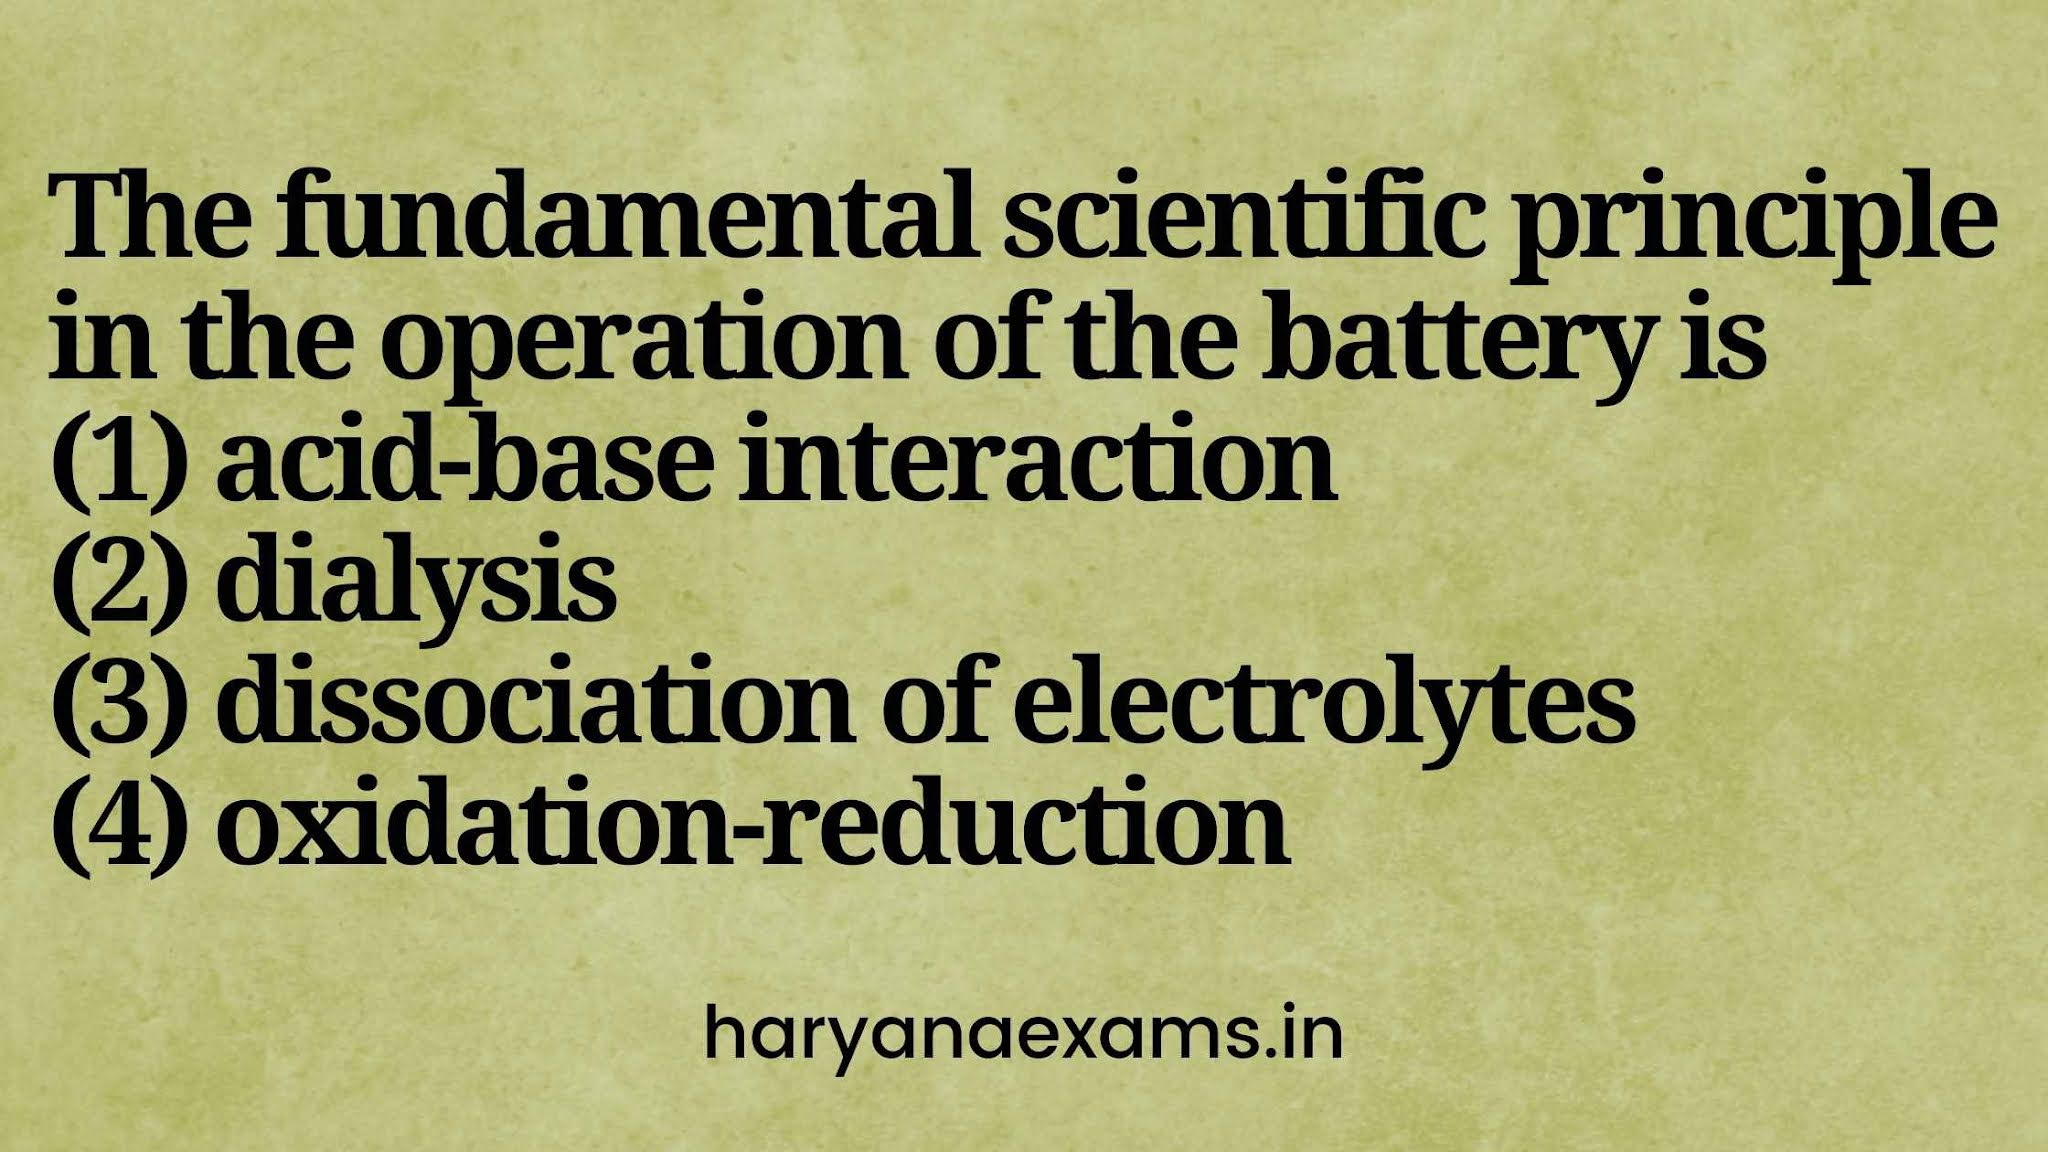 The fundamental scientific principle in the operation of the battery is   (1) acid-base interaction   (2) dialysis   (3) dissociation of electrolytes   (4) oxidation-reduction